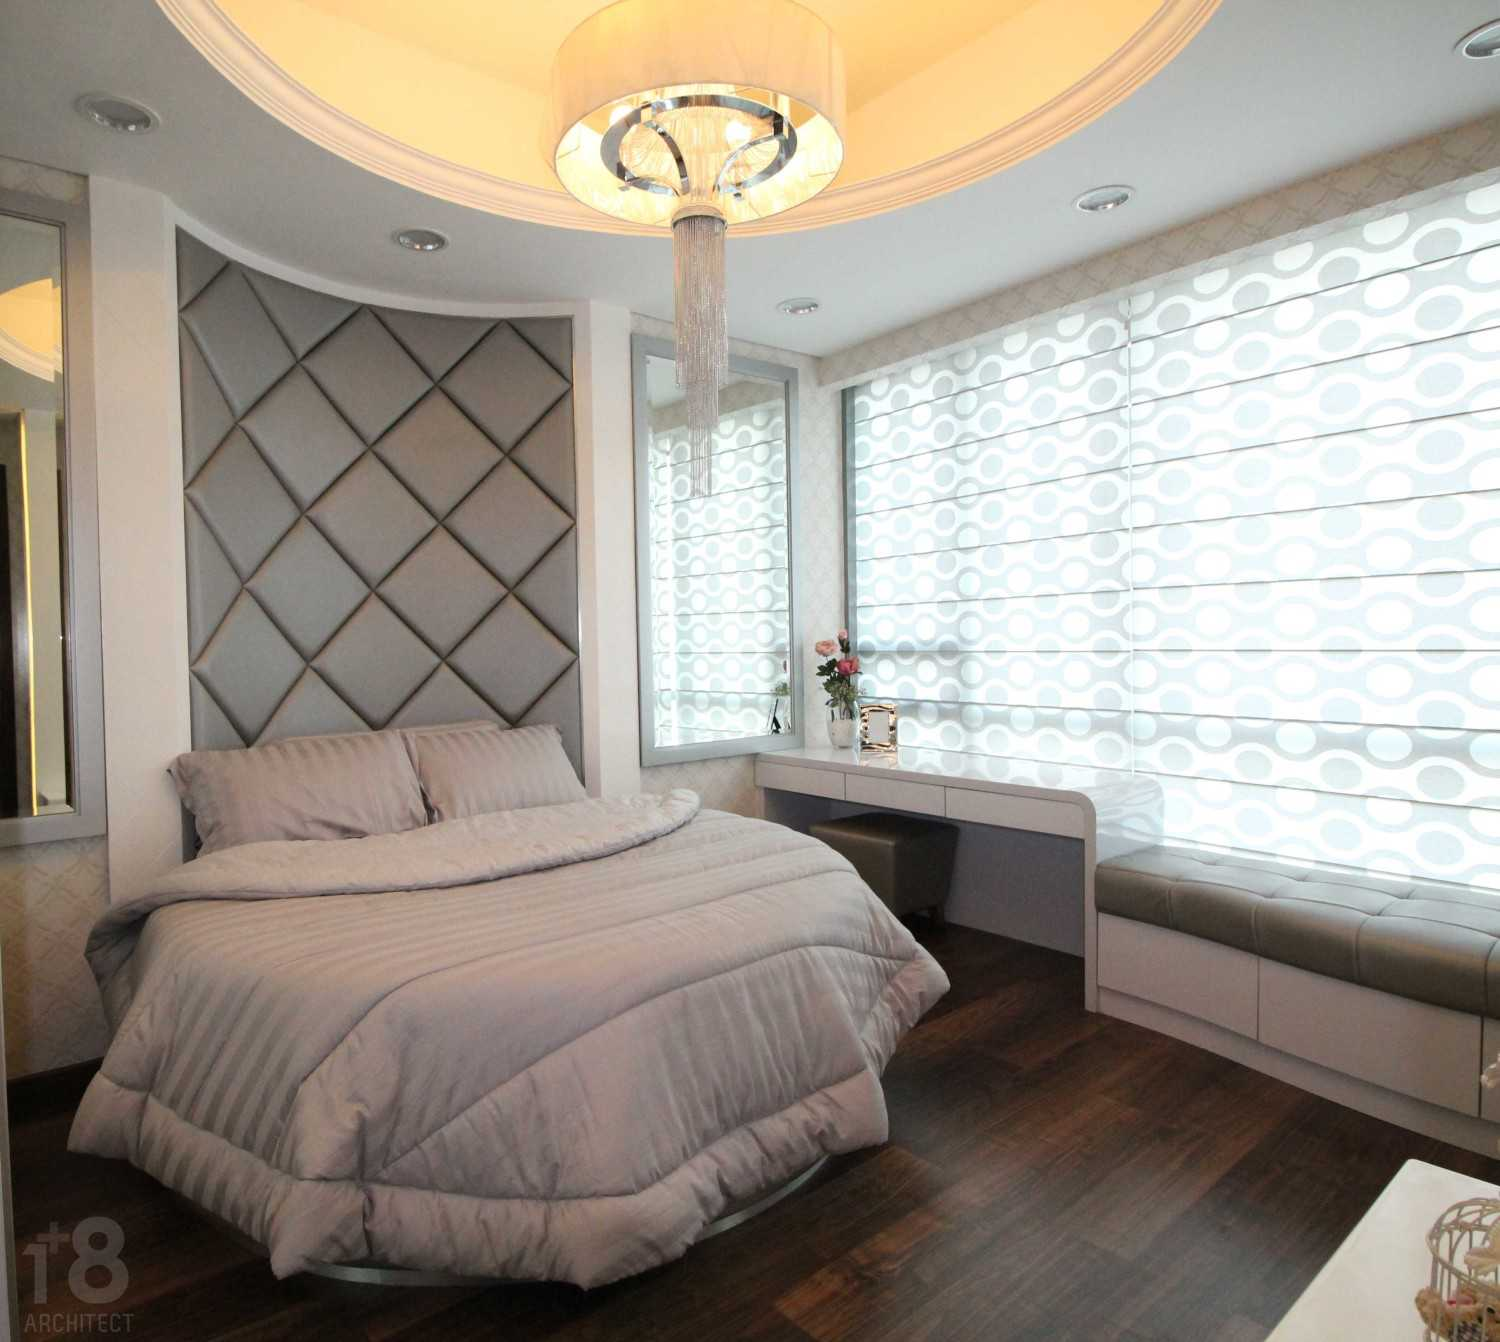 1+8 Architect St. Moritz, Presidential Tower Suite Room Jakarta, Indonesia Jakarta, Indonesia Bedroom Modern 23007